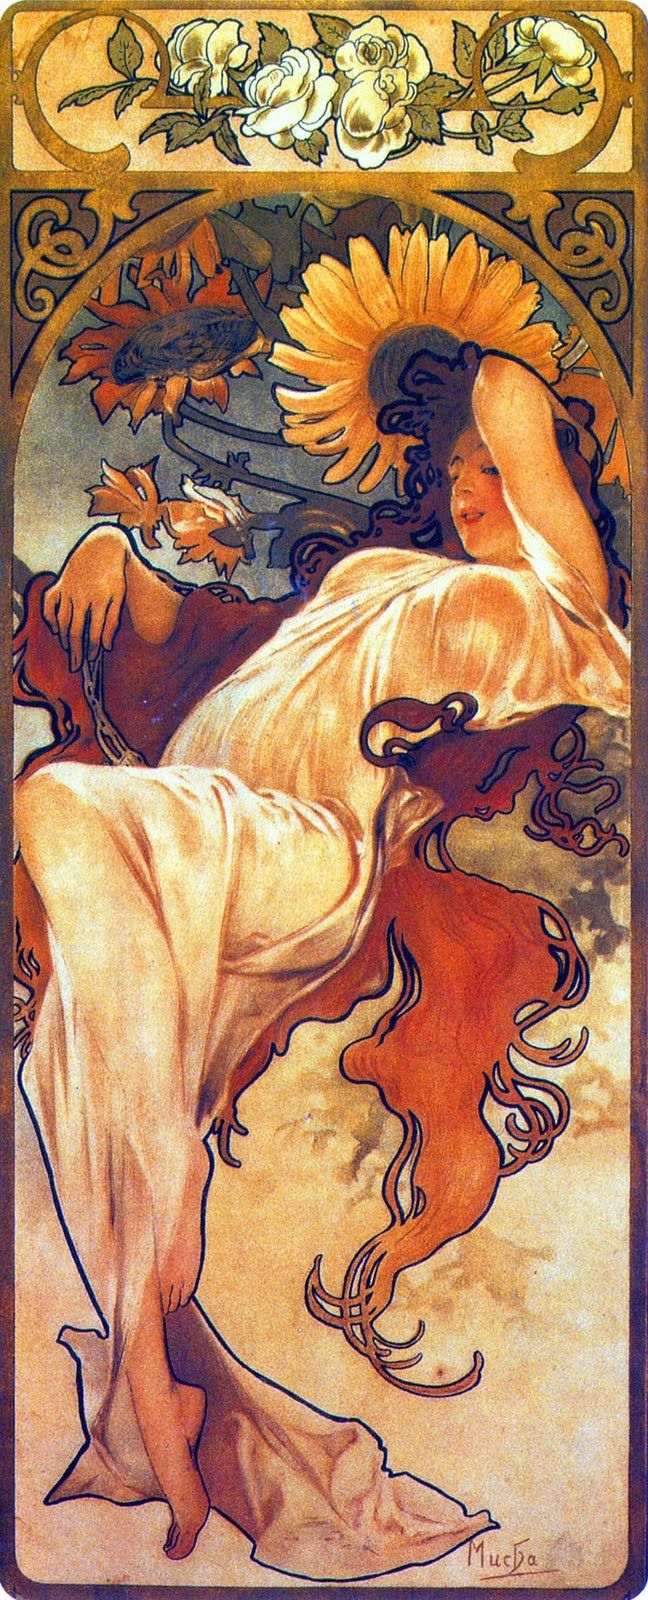 Alphonse Mucha (Czech, 1860 - 1939). The Seasons: Summer, 1897. Color Lithograph, 73 x 32 cm.